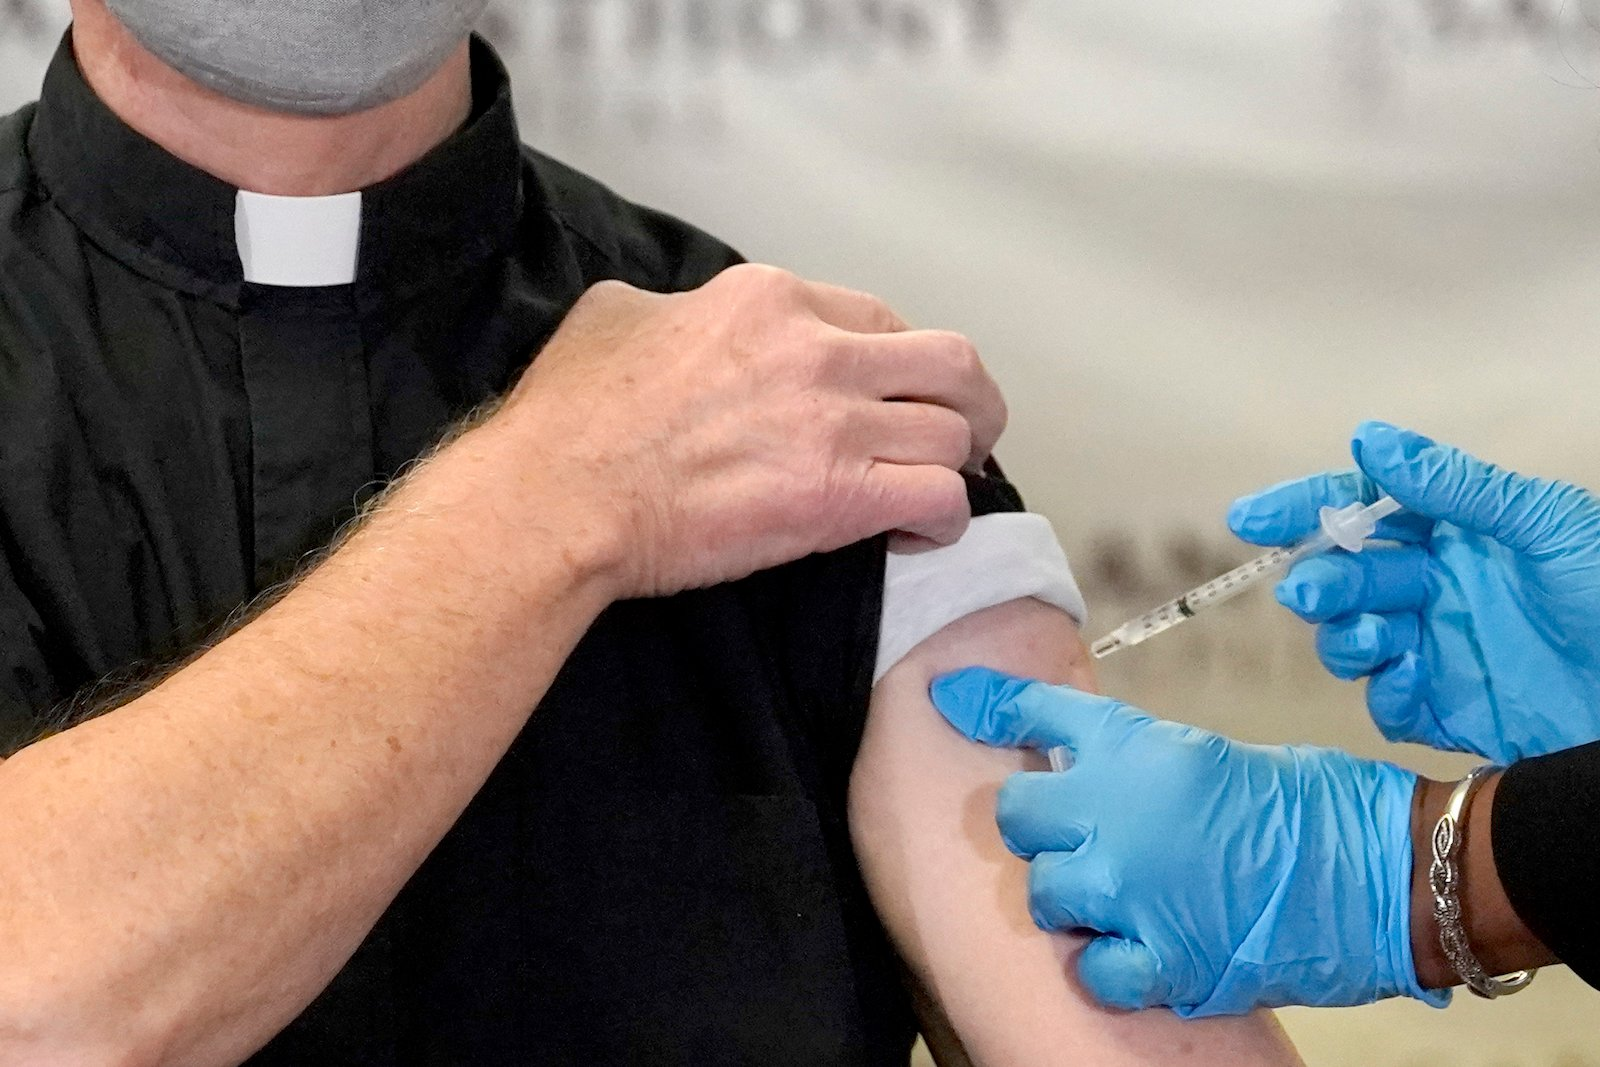 The Rev. Donald Nevins, pastor of St. Agnes of Bohemia Catholic Church in Chicago, left, receives the first of the two Pfizer-BioNTech COVID-19 vaccinations Dec. 23, 2020. (AP Photo/Charles Rex Arbogast)